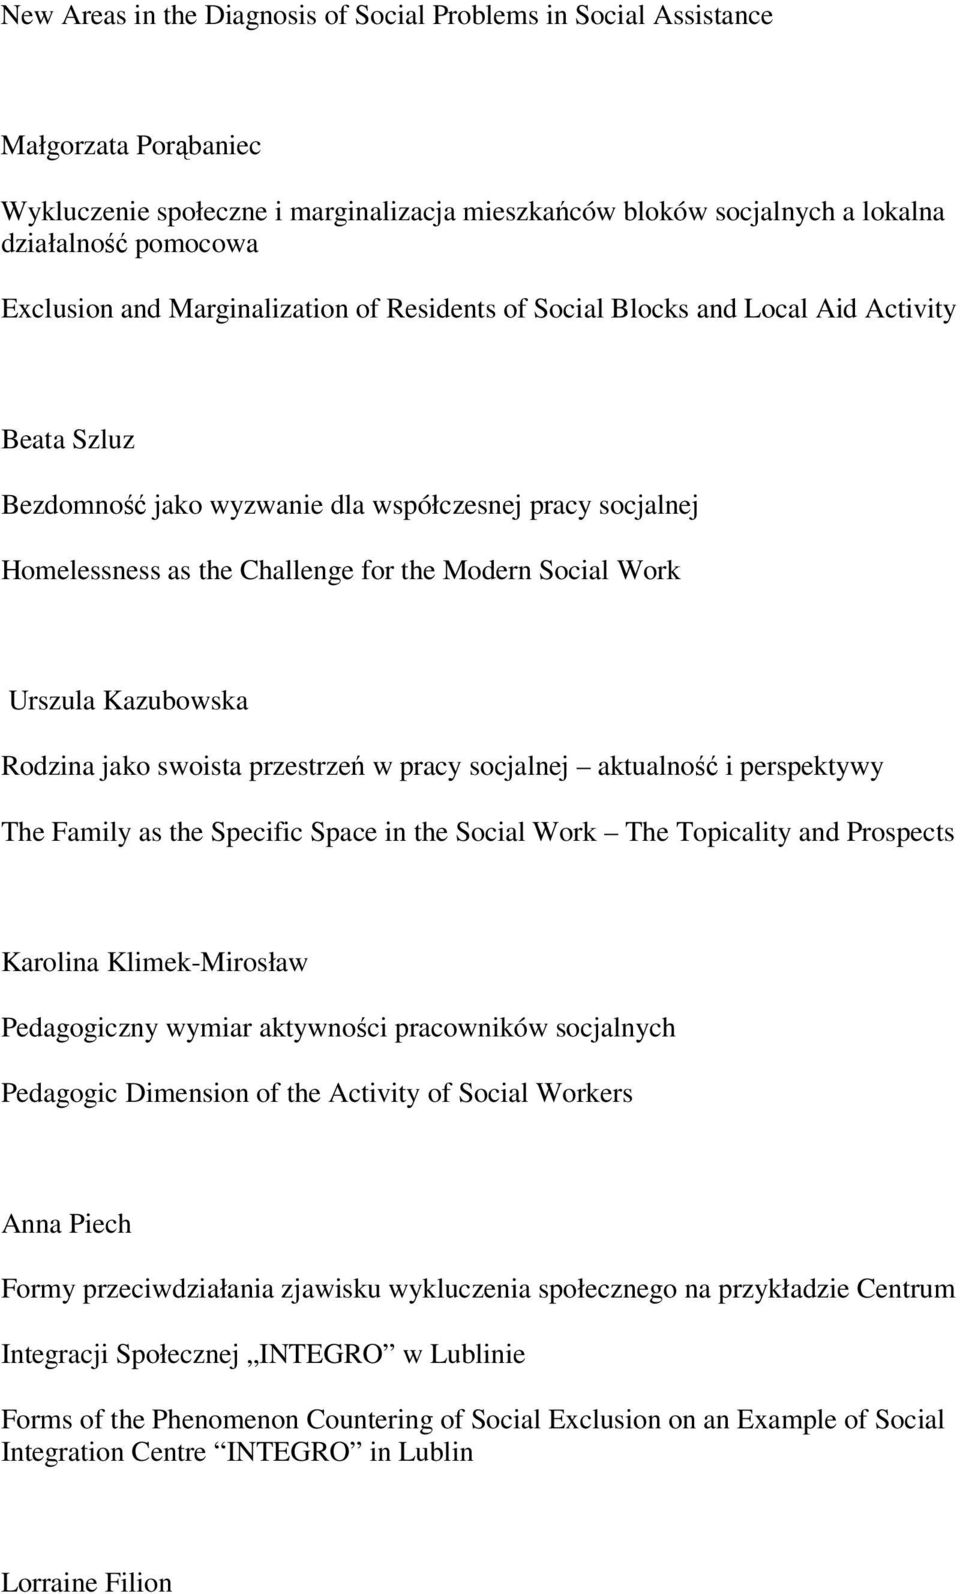 Urszula Kazubowska Rodzina jako swoista przestrzeń w pracy socjalnej aktualność i perspektywy The Family as the Specific Space in the Social Work The Topicality and Prospects Karolina Klimek-Mirosław